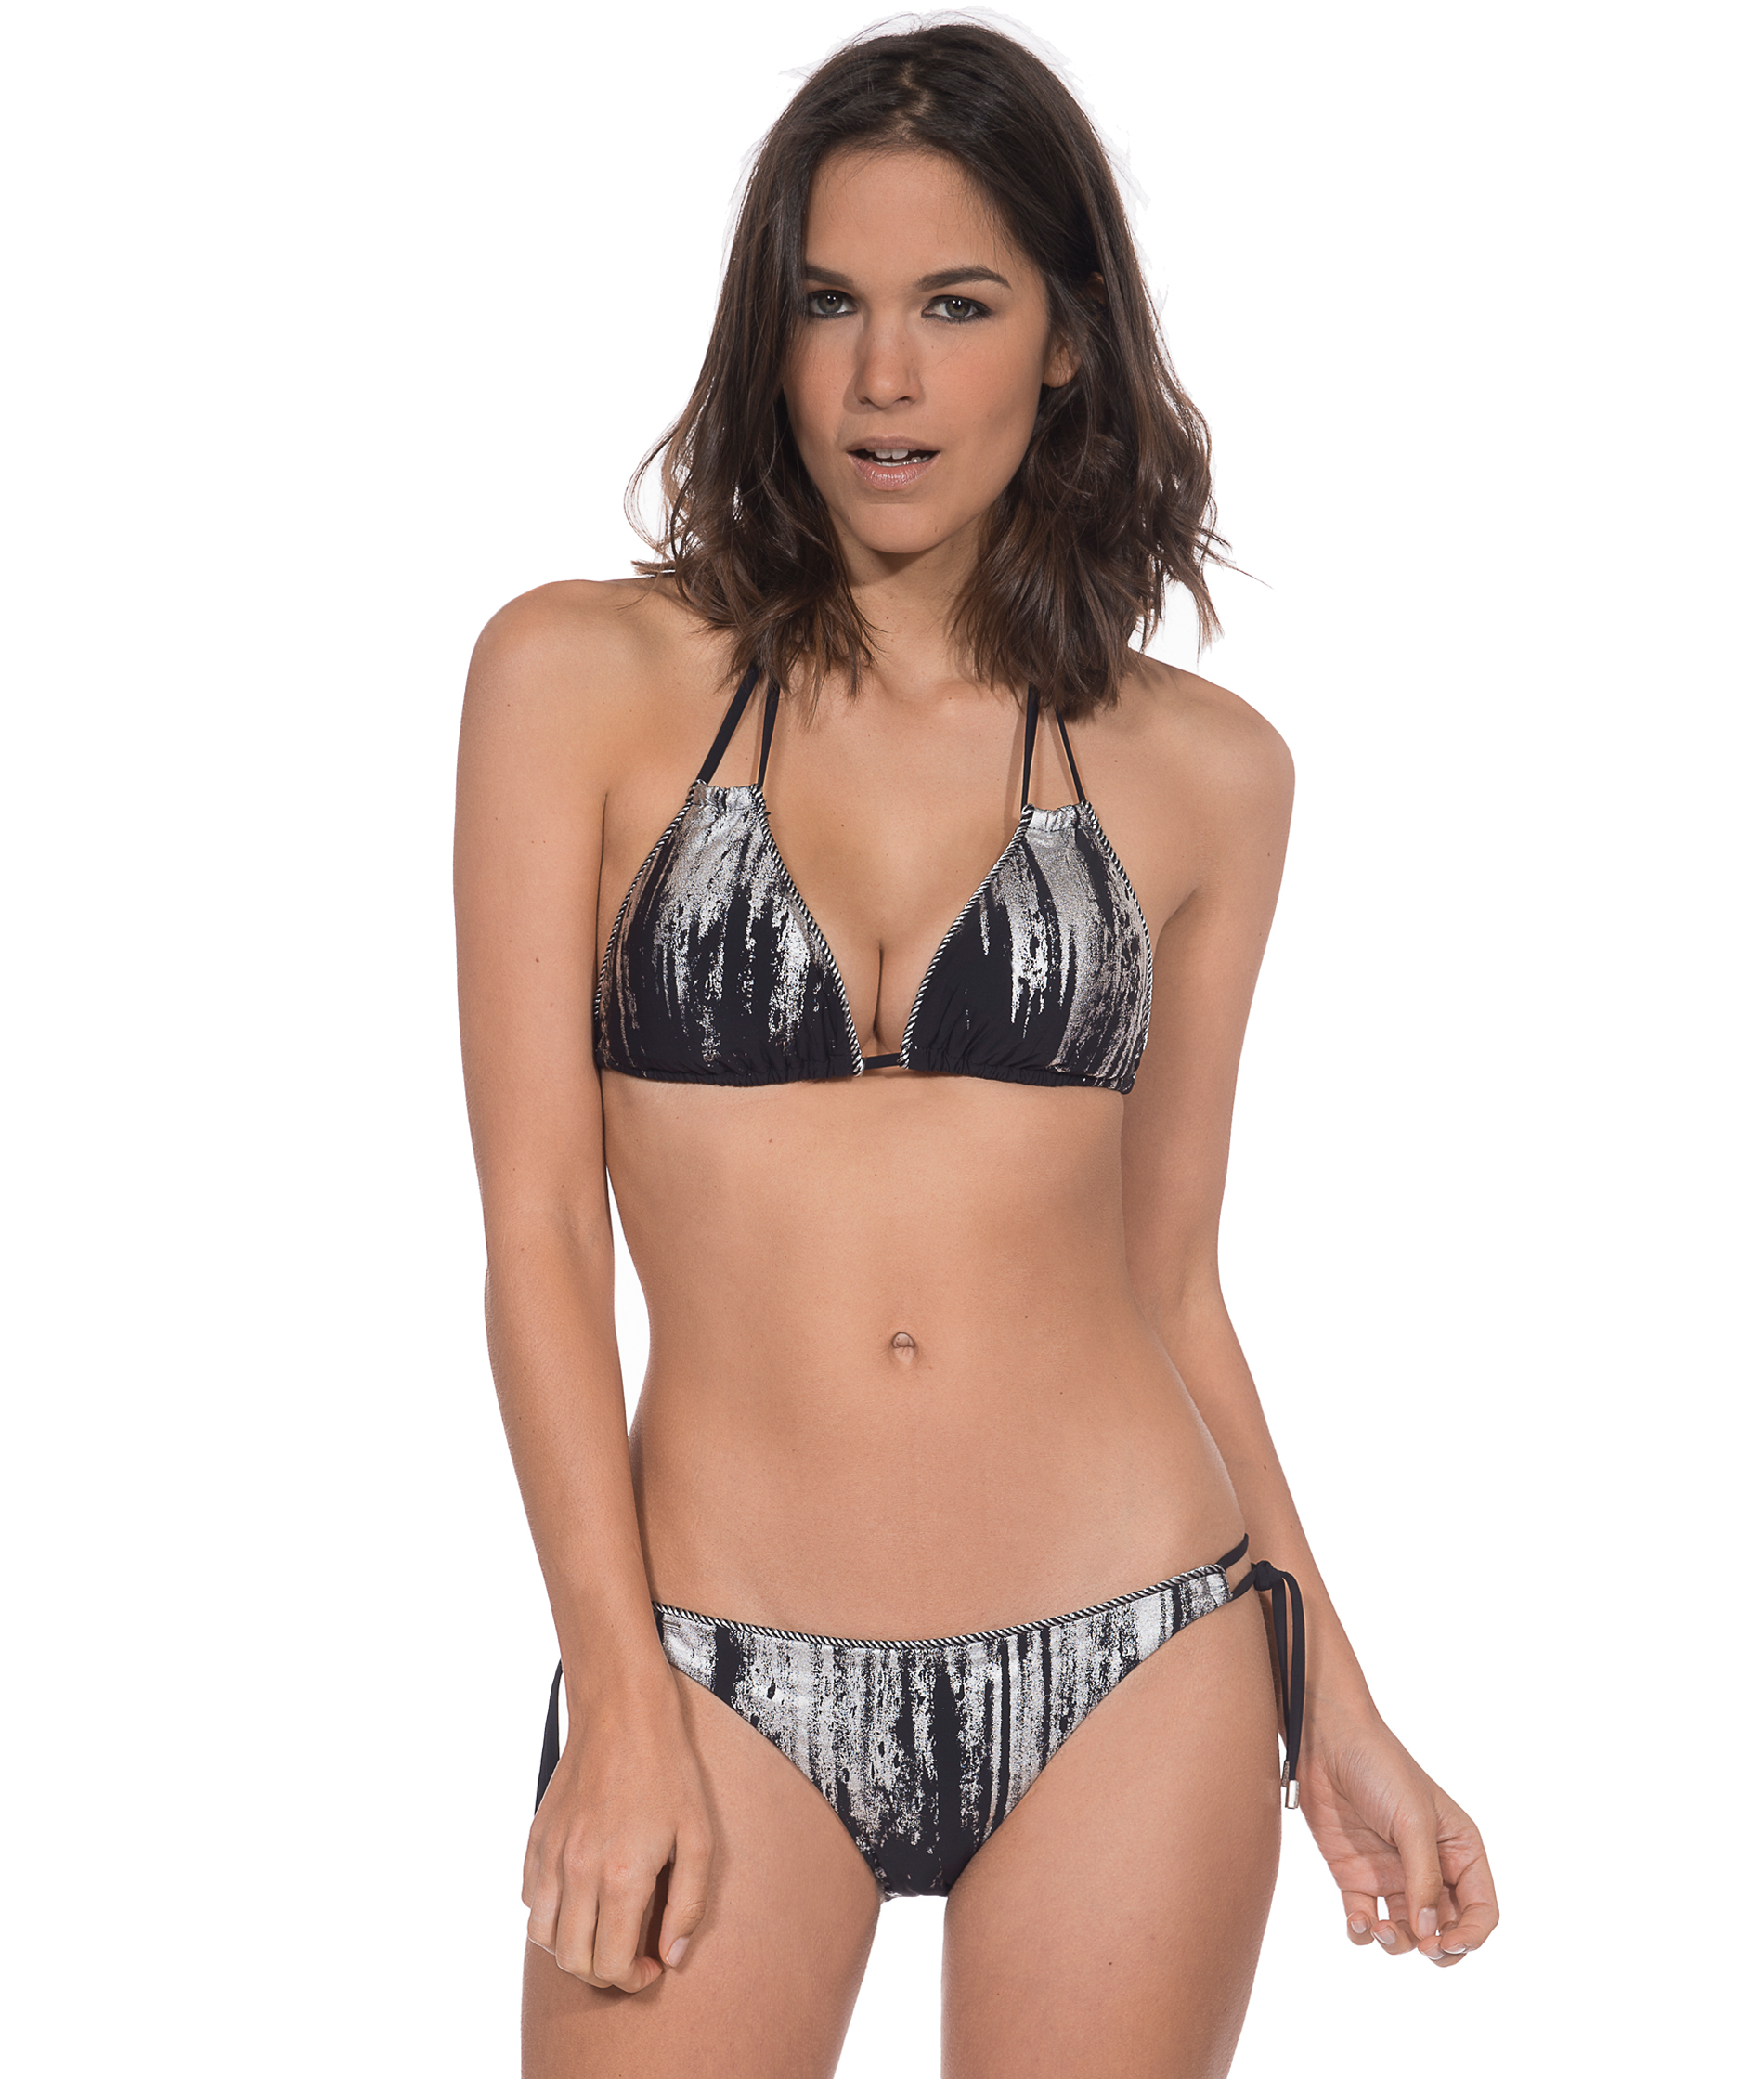 Val D'Azur Ladies Infi Triangle Bikini Set